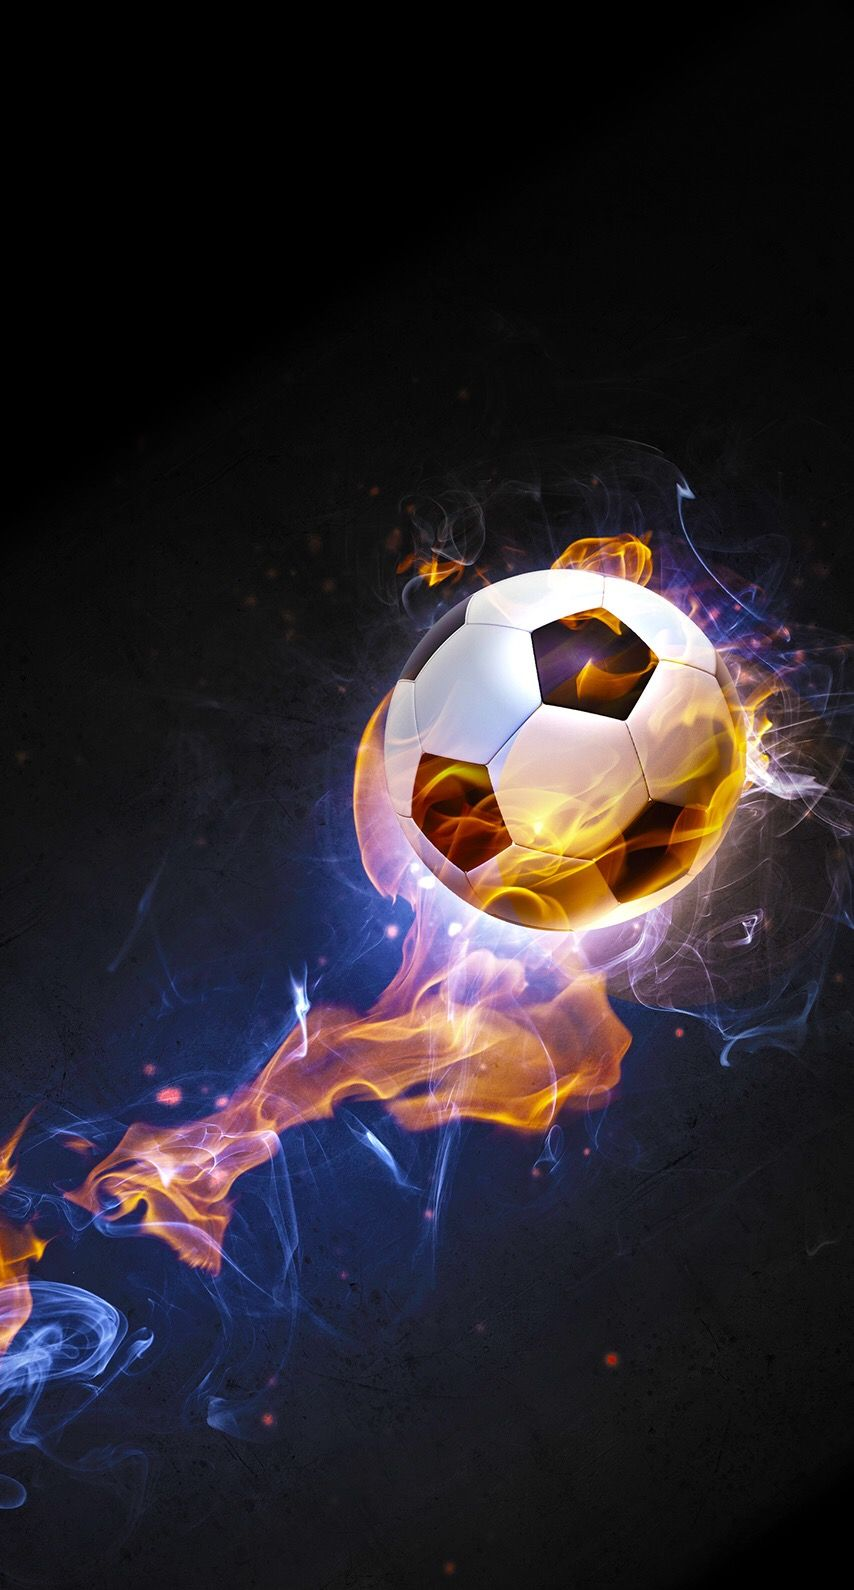 Wallpaper Football Background Lockscreen Iphonewallpaper Androidwallpaper Football Wallpaper Soccer Backgrounds Soccer